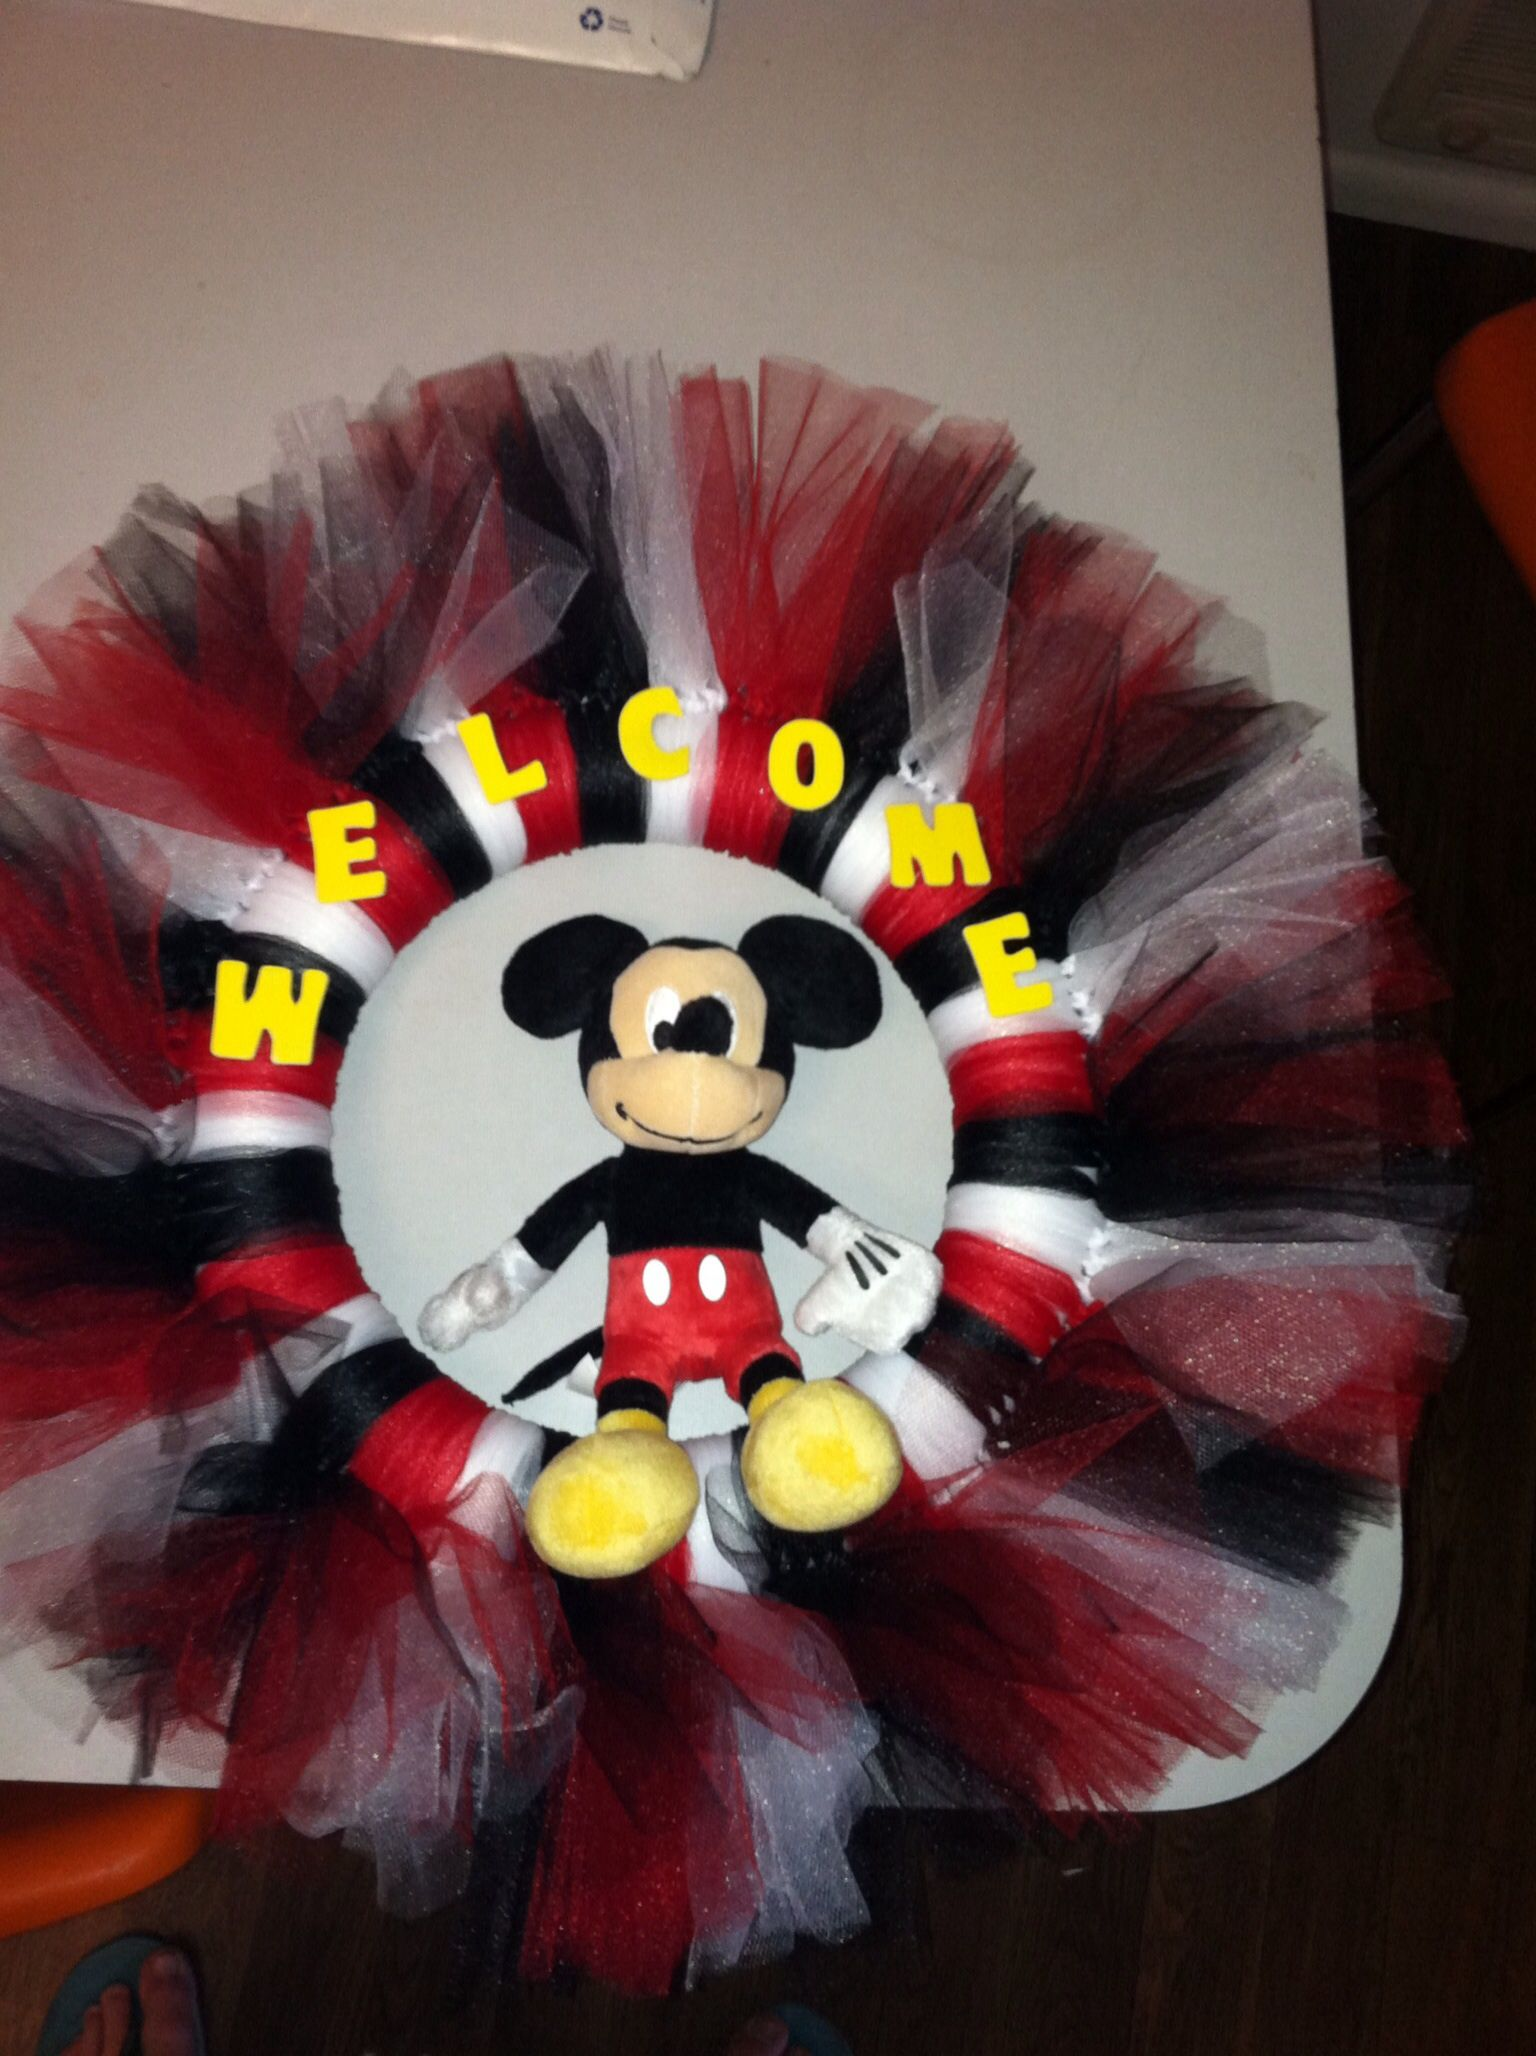 The Mickey Mouse Themed Wreath I Made I Love It